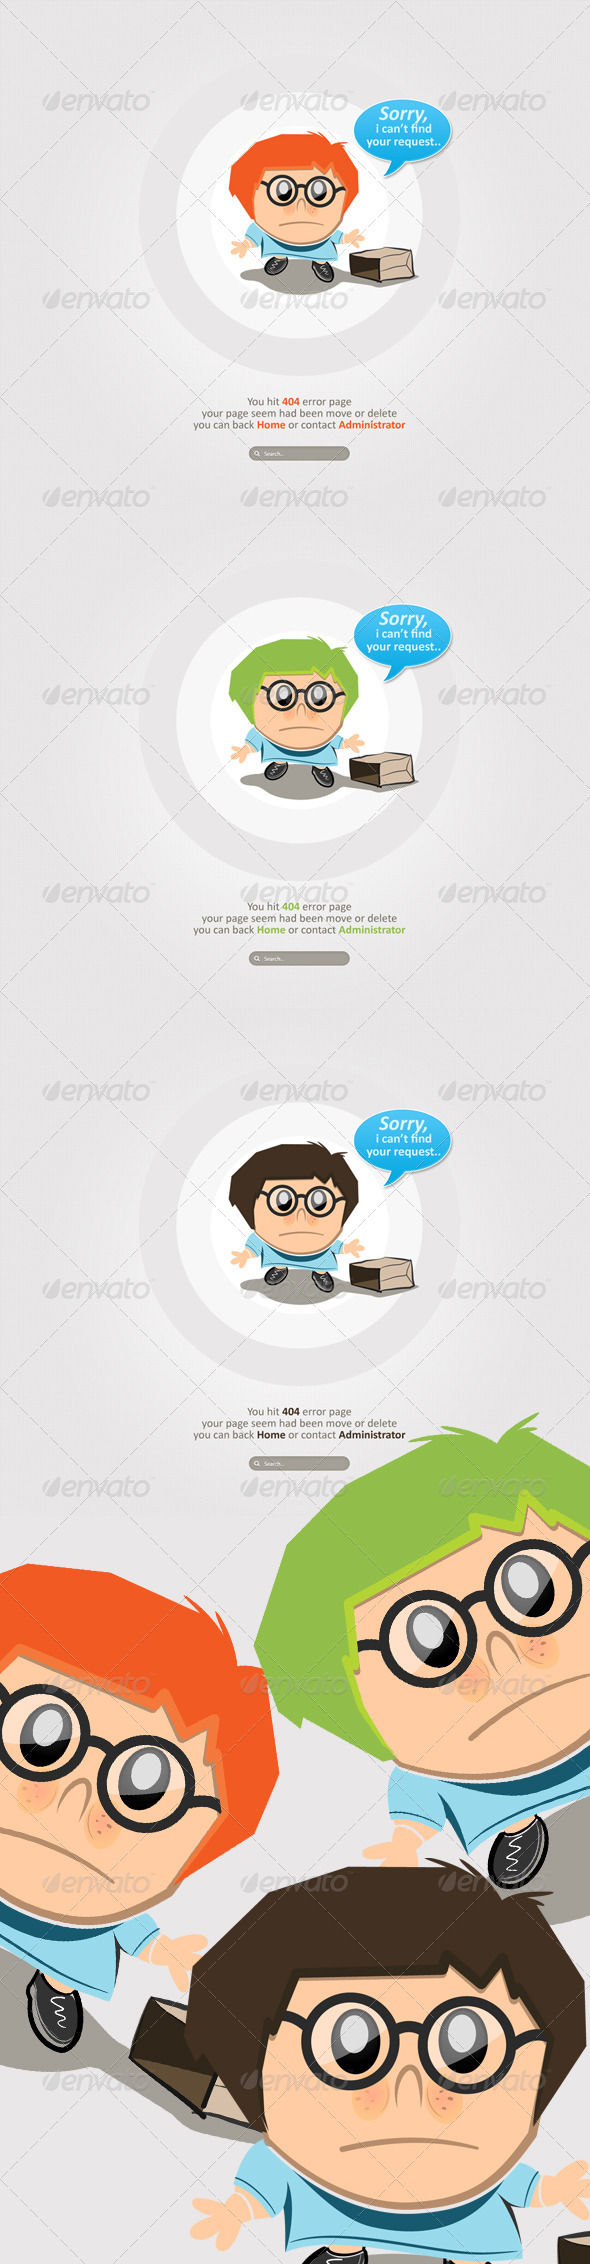 Clean And Simple Character Error by AddtoFavorites (layered 404 page template)